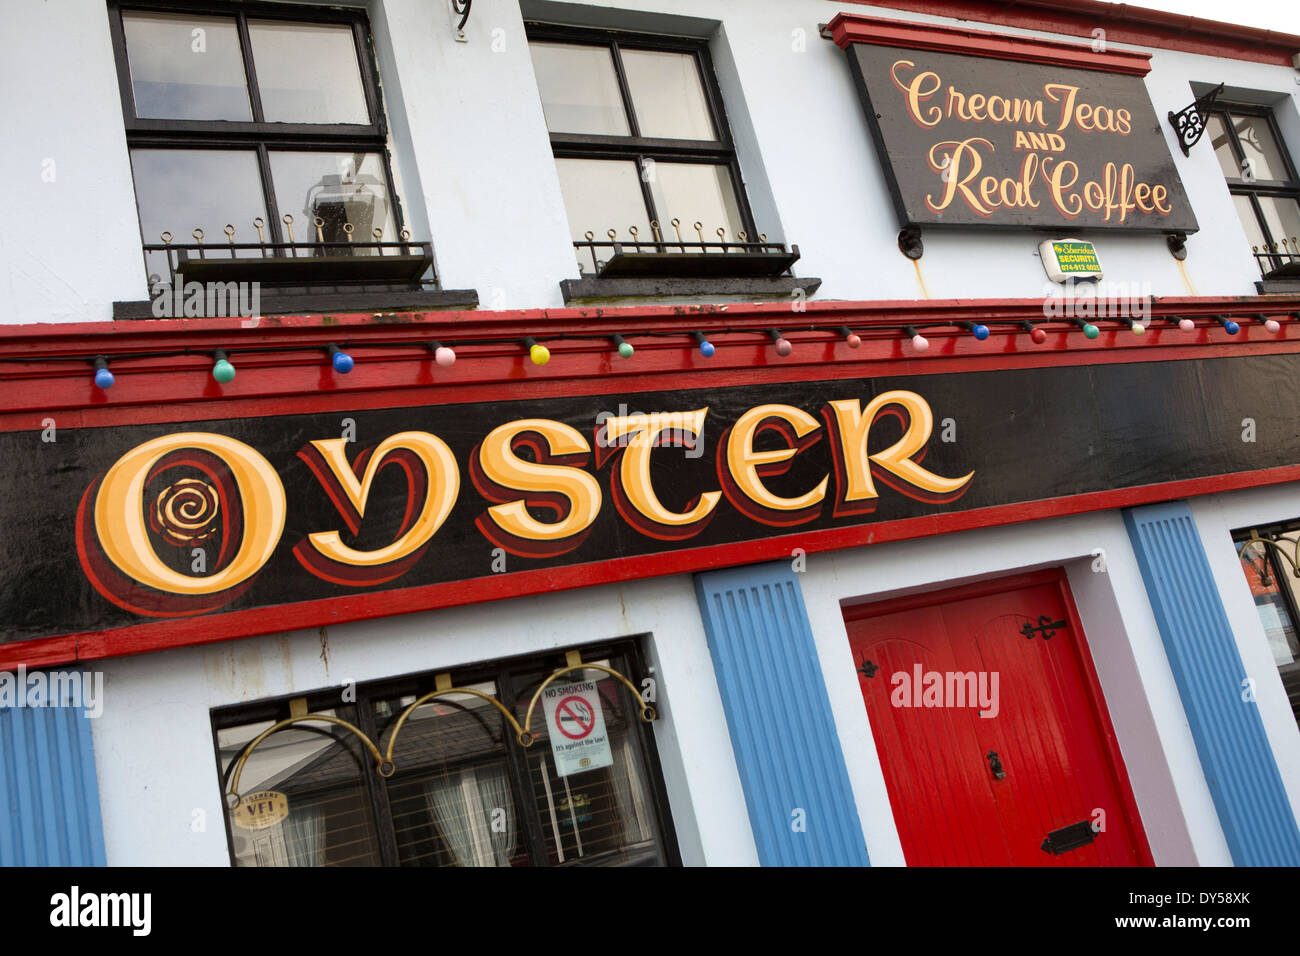 Ireland, Co Donegal, Dunfanaghy, Main Street, Oyster Tea House - Stock Image